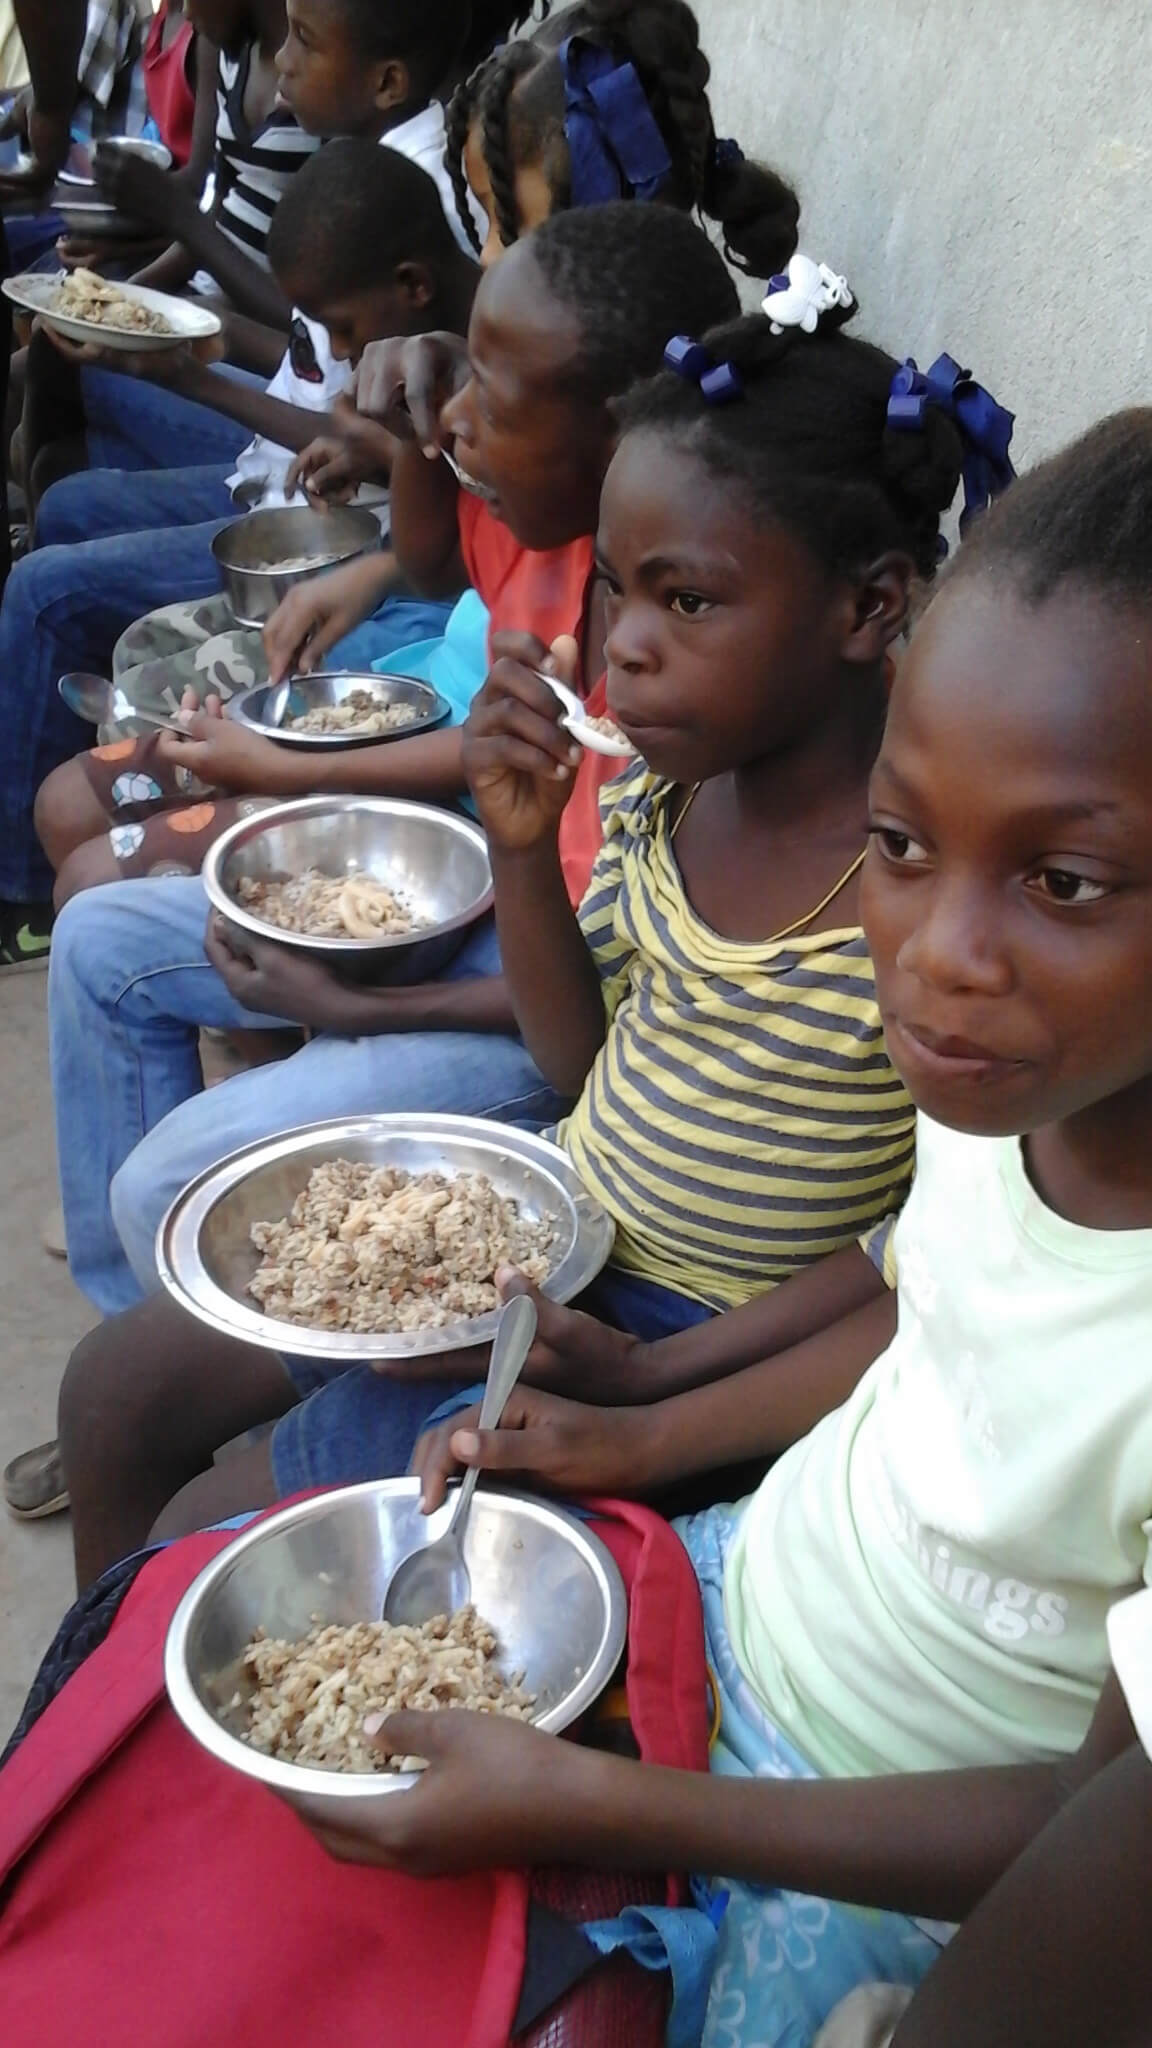 help give children food they need